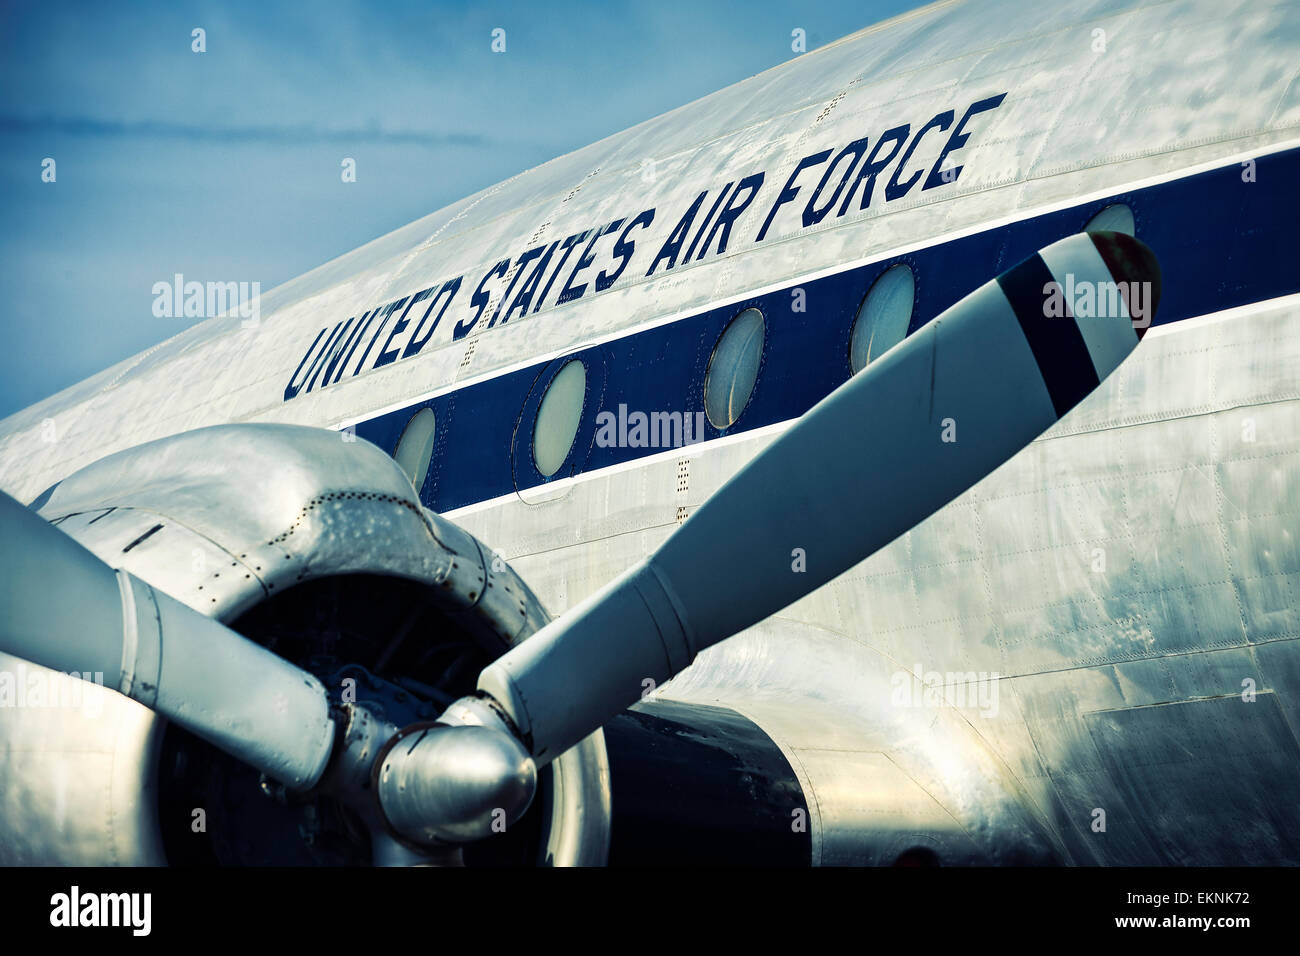 United States Air Force - Stock Image